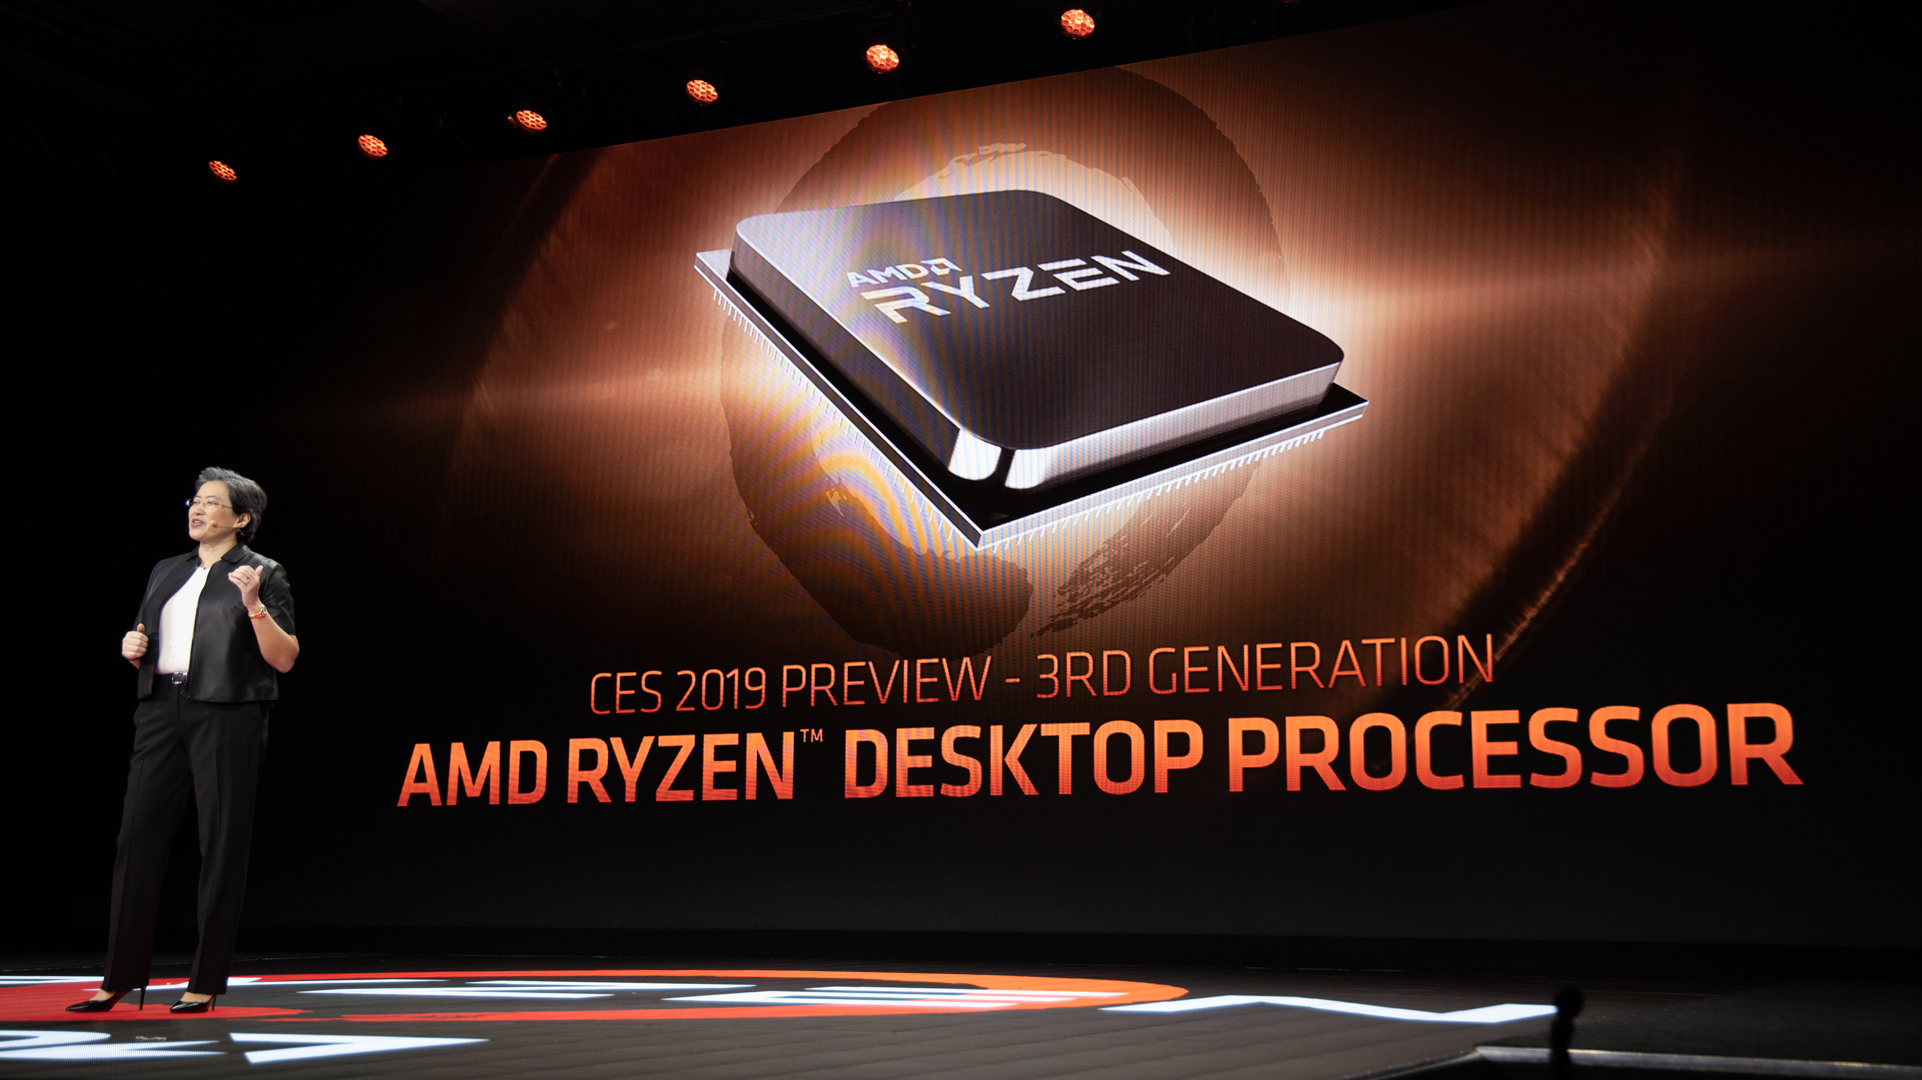 AMD may launch 7nm Ryzen processors and Navi graphics cards this